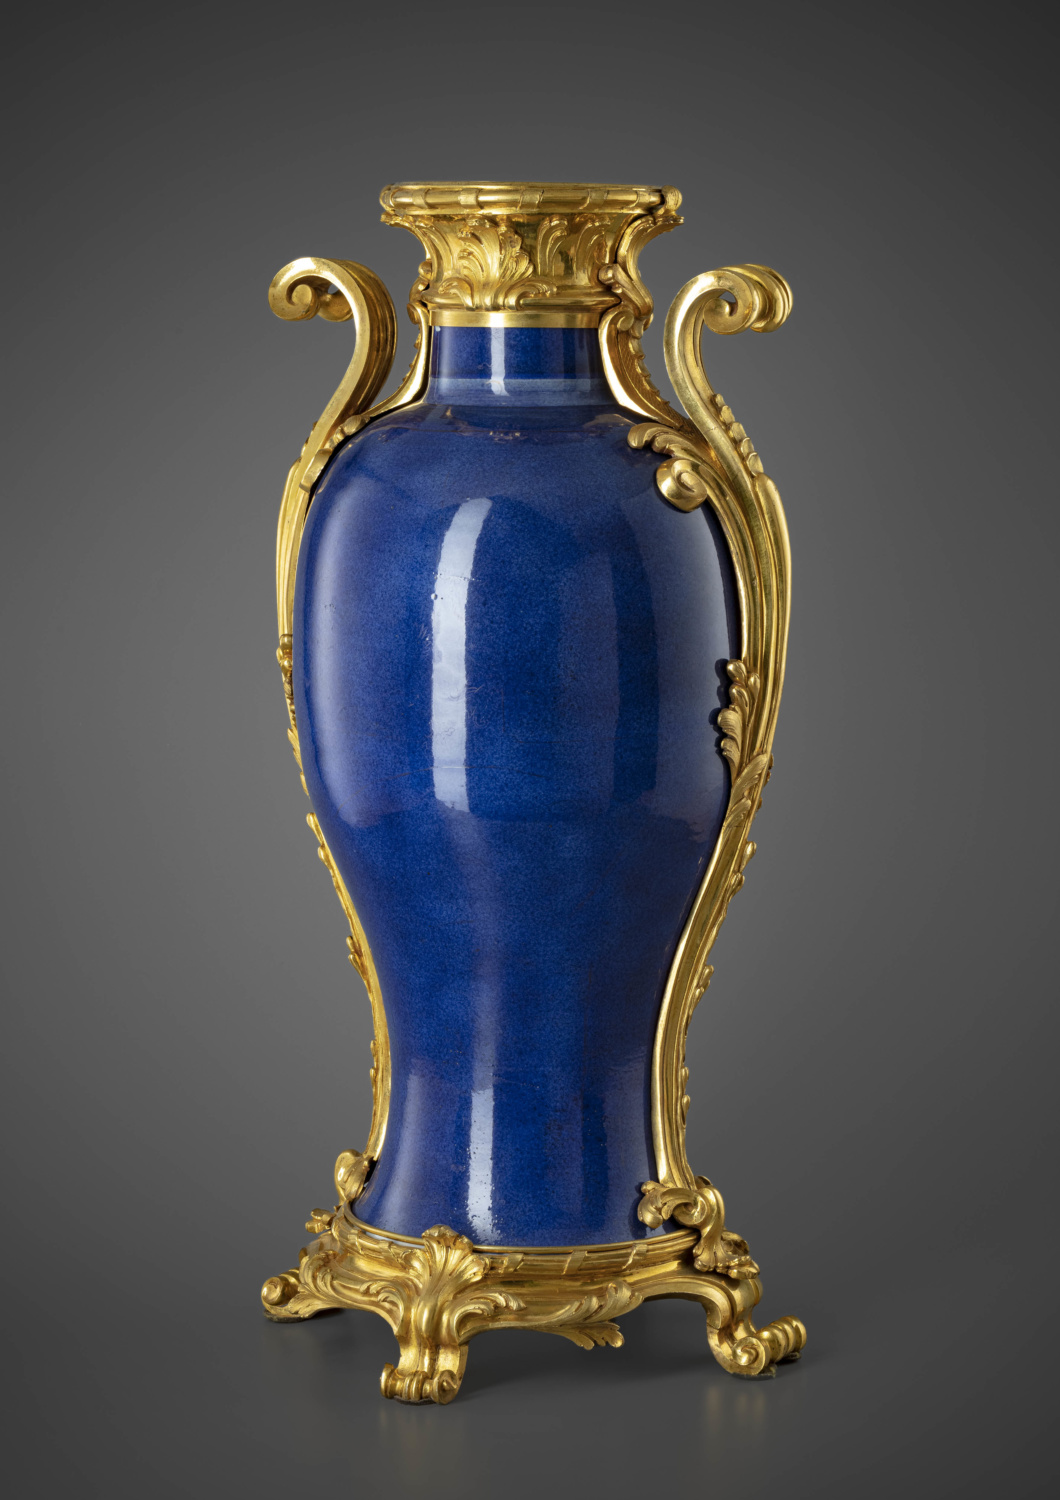 A large ormolu mounted gold powdered blue porcelain vase - Galerie Kugel